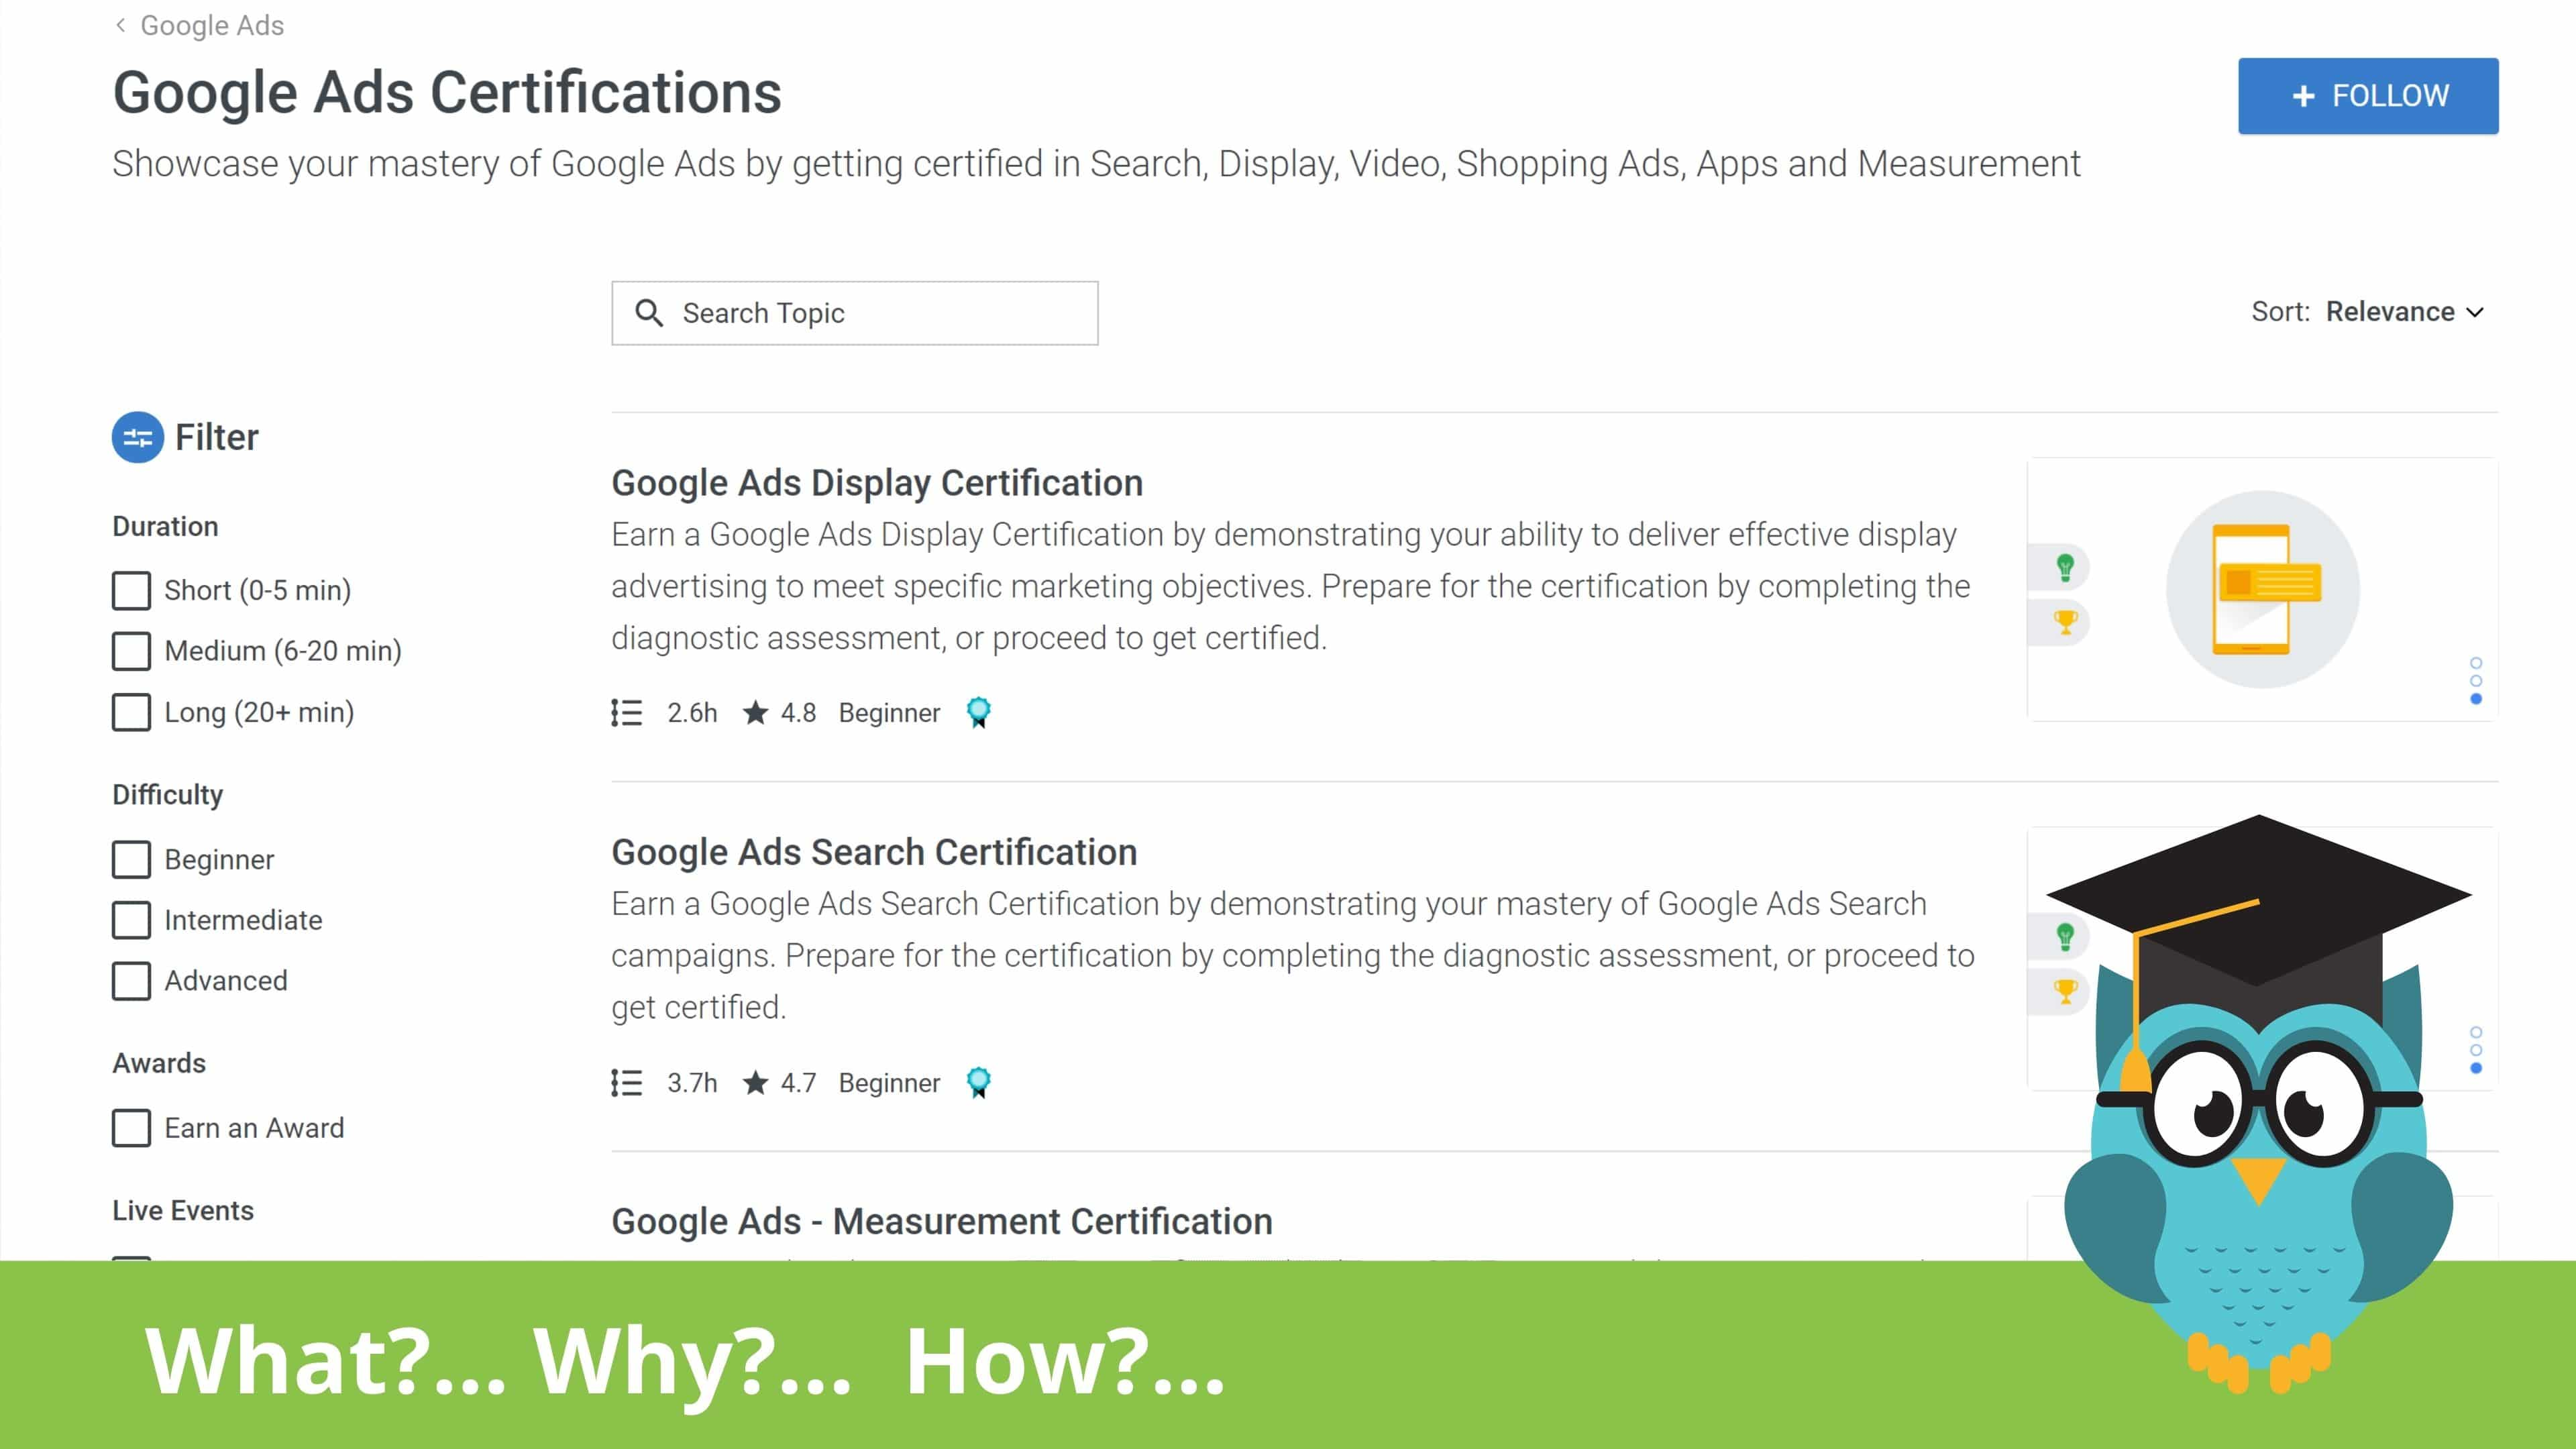 How to Pass Google Ads Certifications?